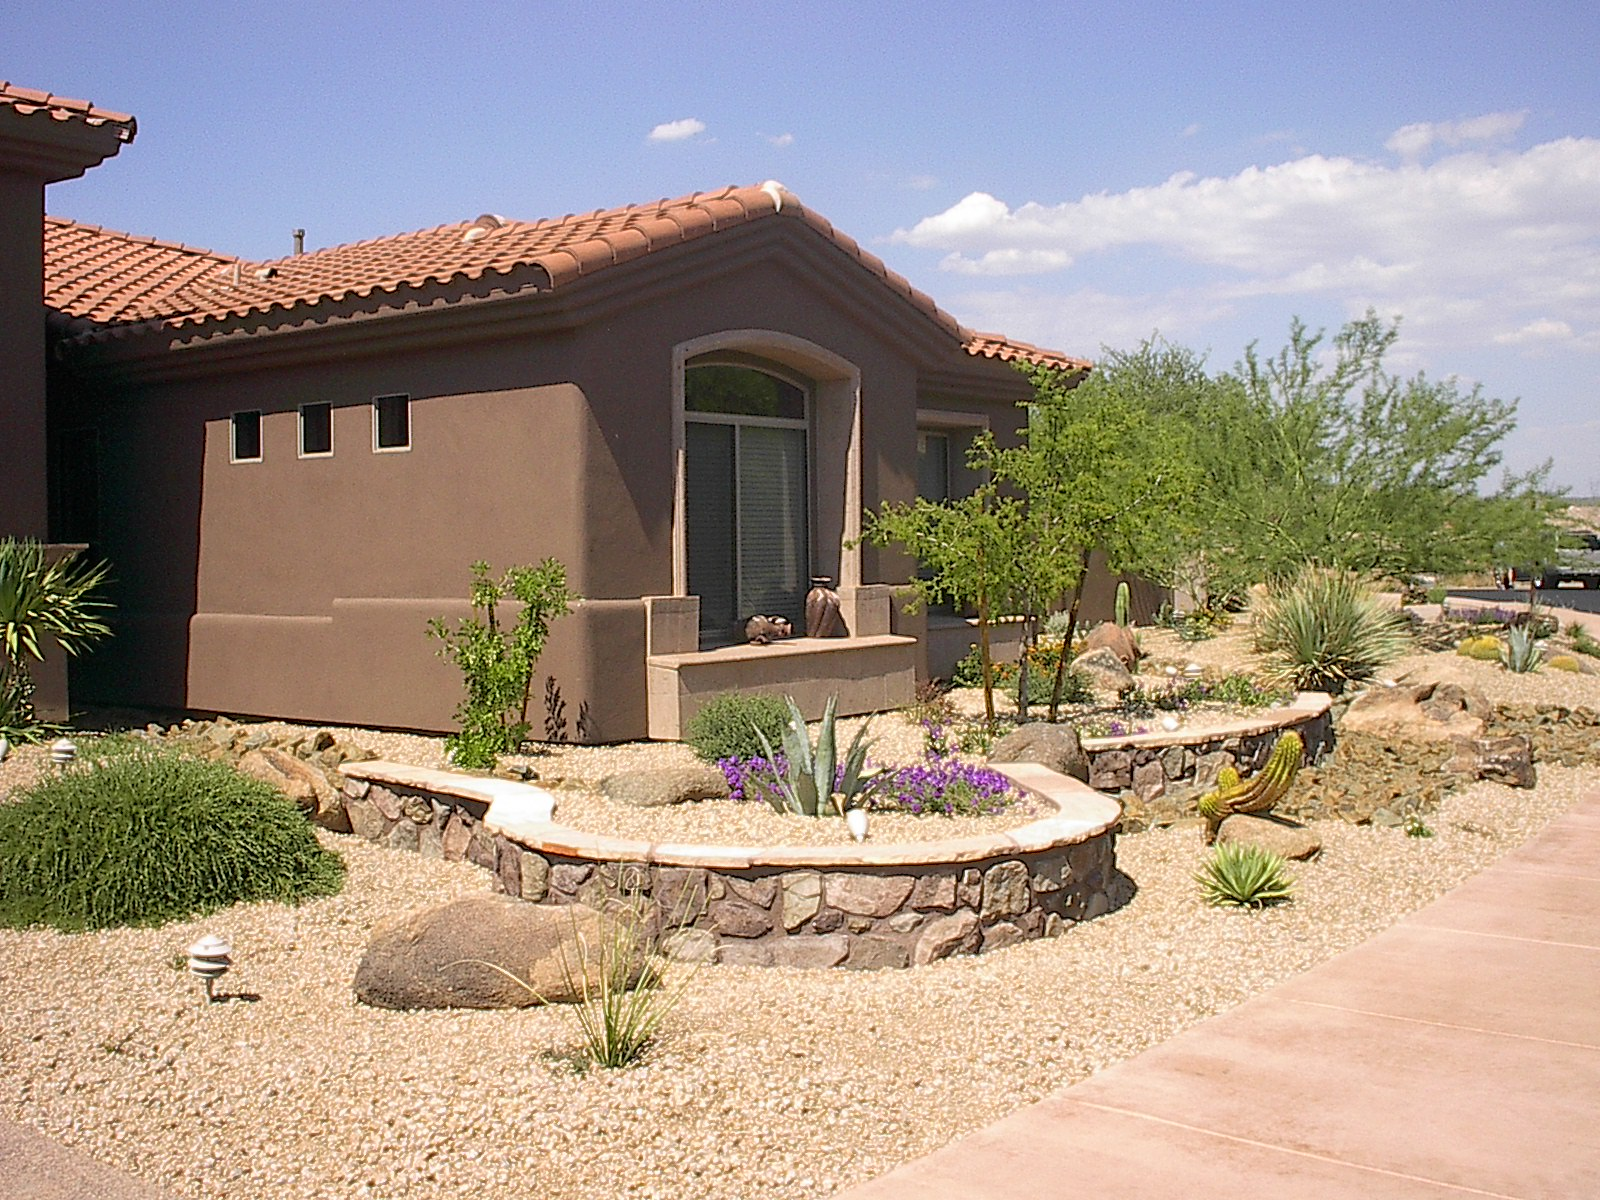 Perfect Small Front Yard Desert Landscaping Ideas 1600 x 1200 · 577 kB · jpeg